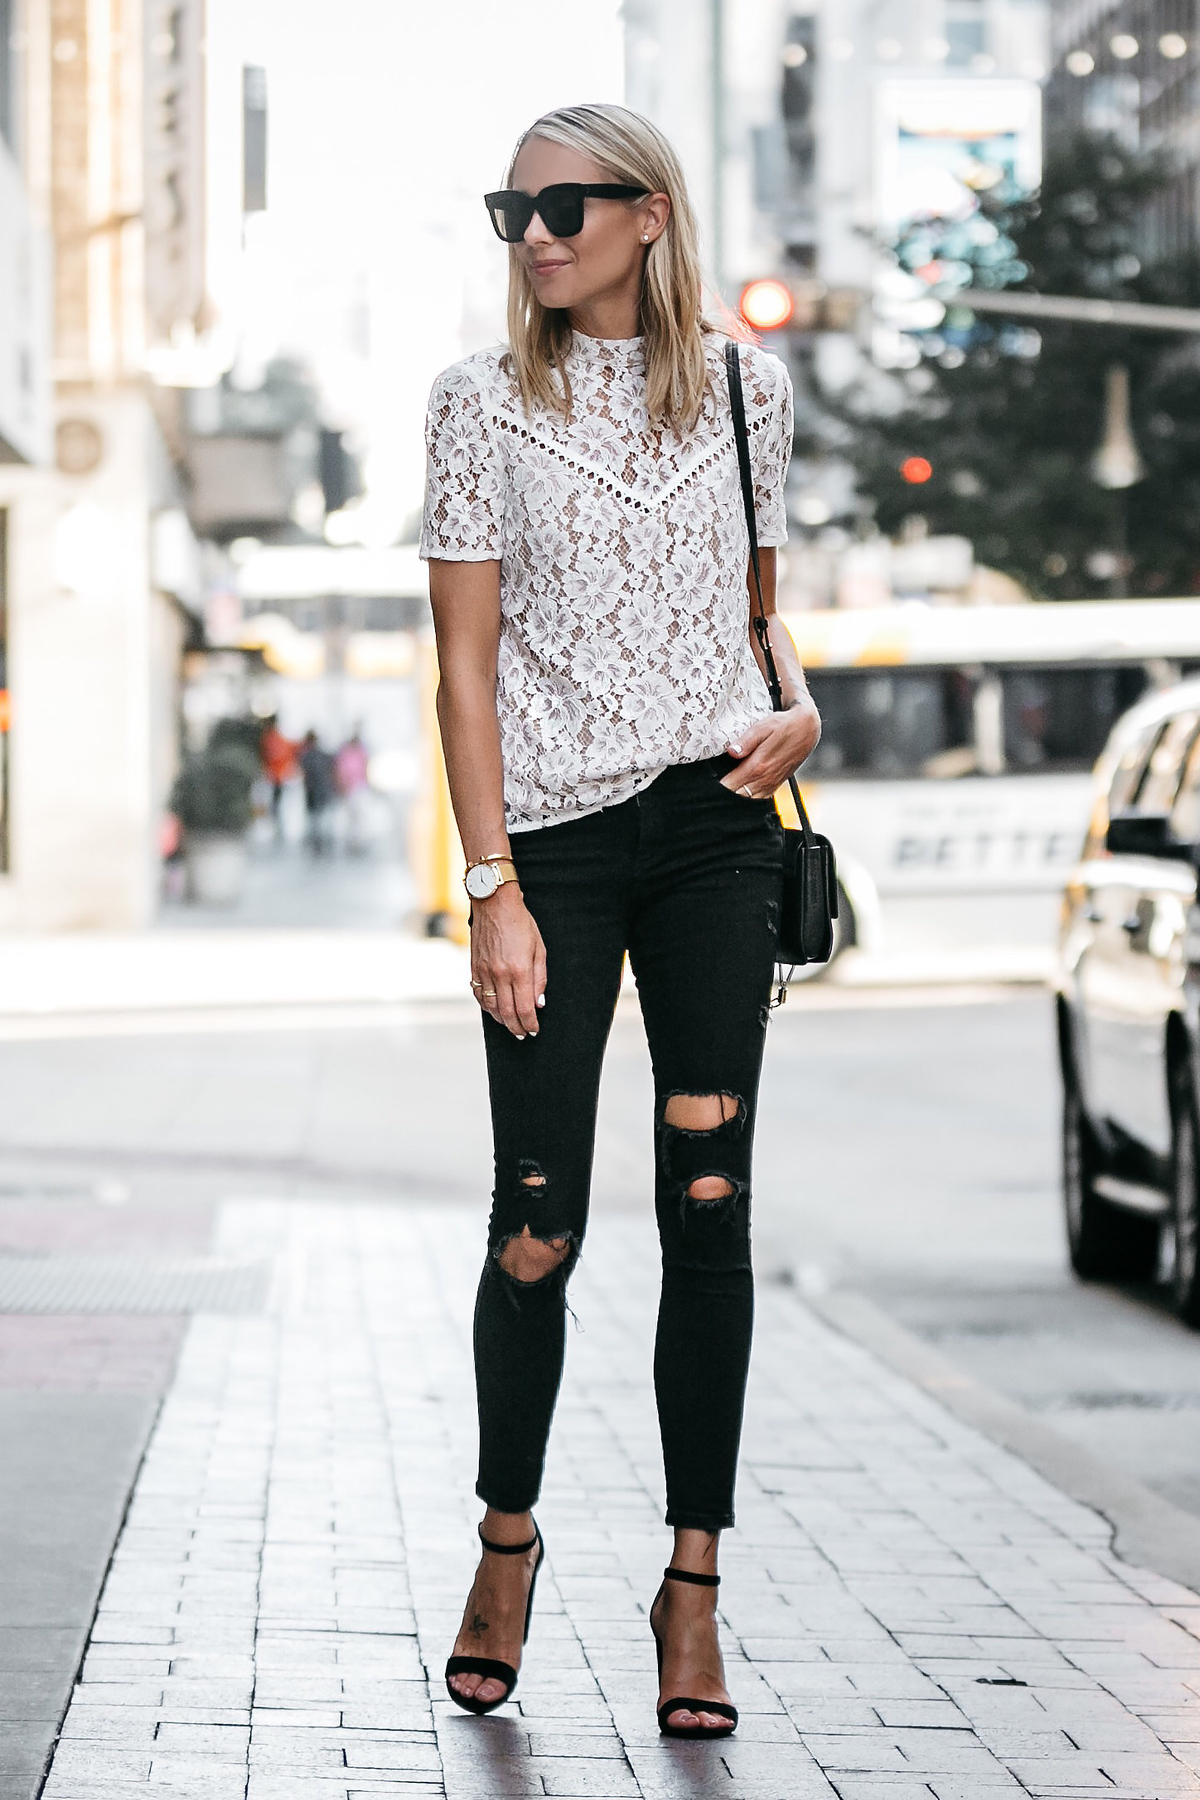 41fcbdad Blonde Woman Wearing Nordstrom Anniversary Sale White Lace Top Zara Black  Ripped Skinny Jeans Outfit Black